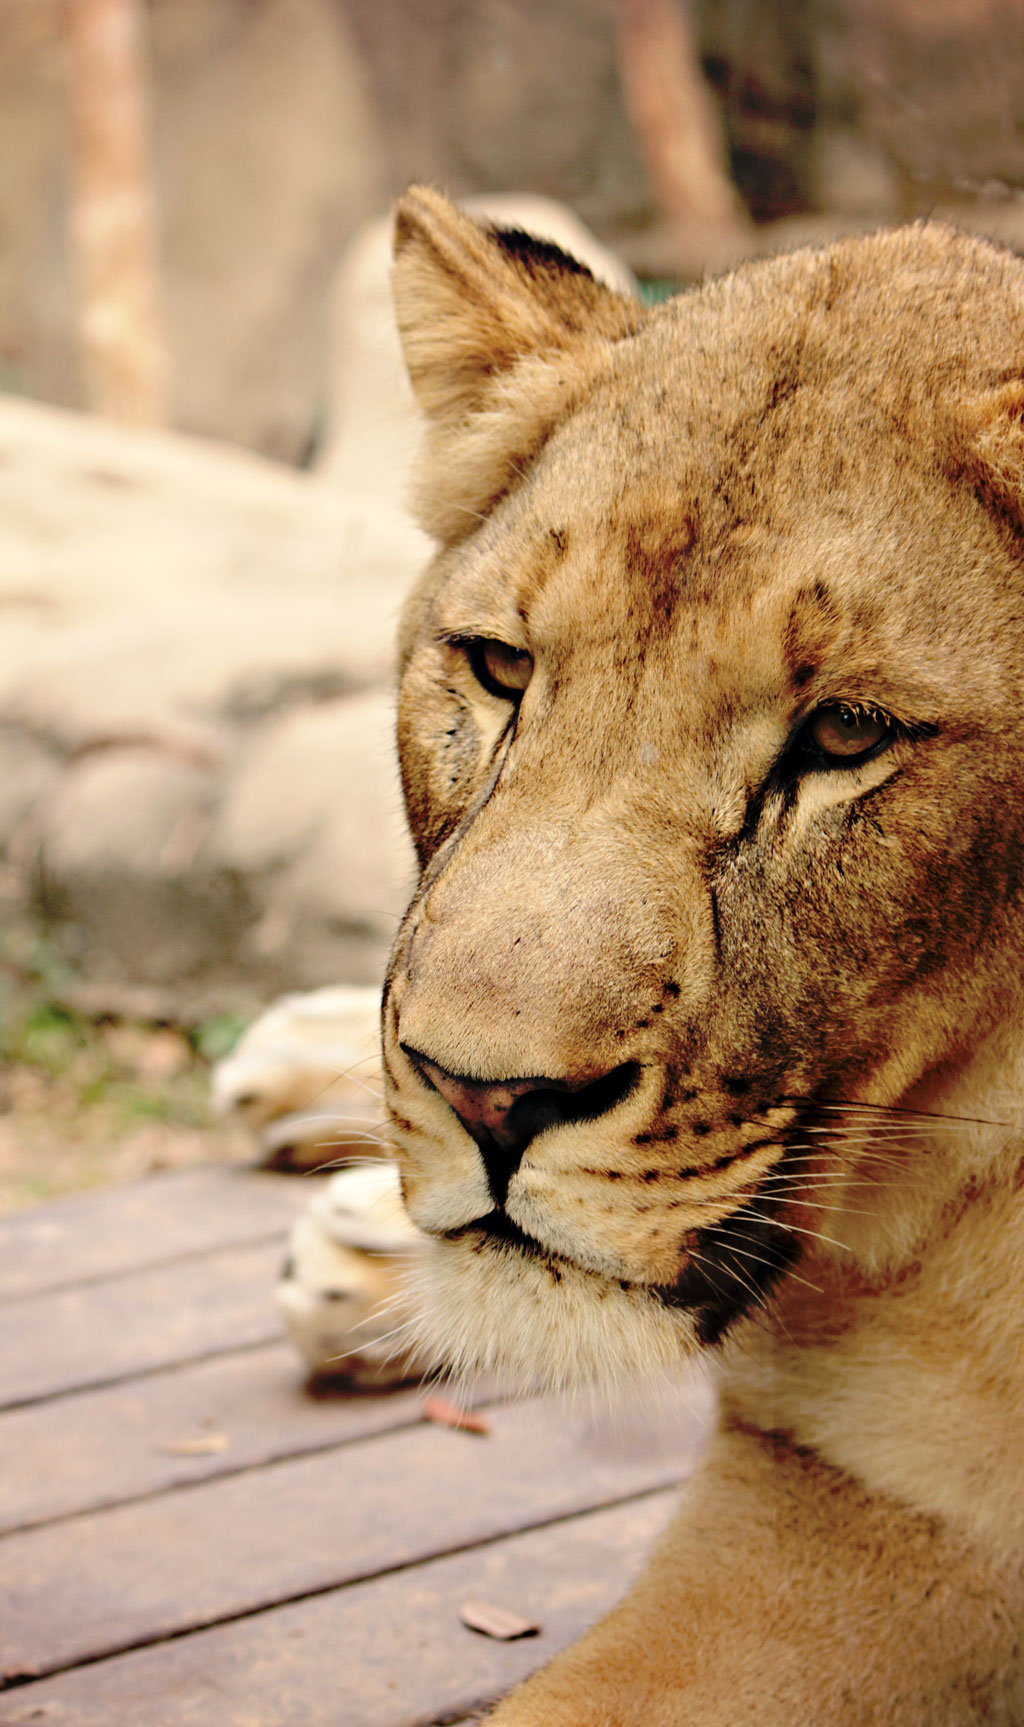 close-up-lions-face-zoo